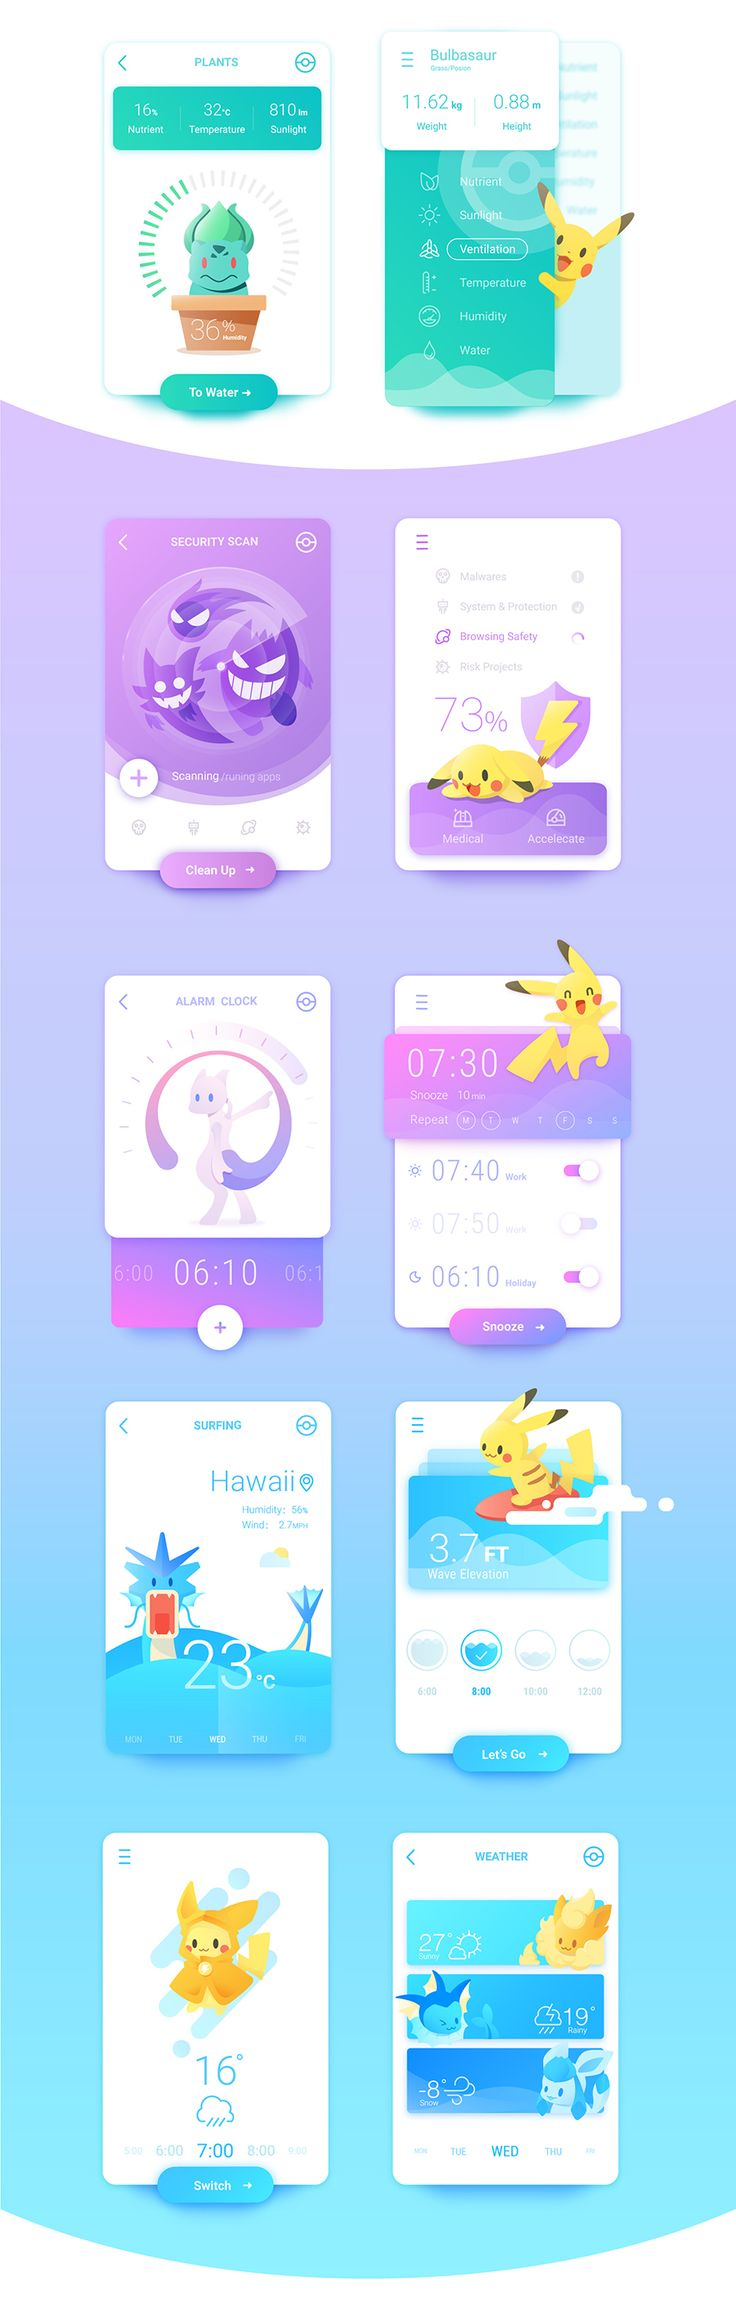 "Some association between Pokemons and Interfaces. Hope you like it bros! Press ""L"" on your keyboard if you do!"